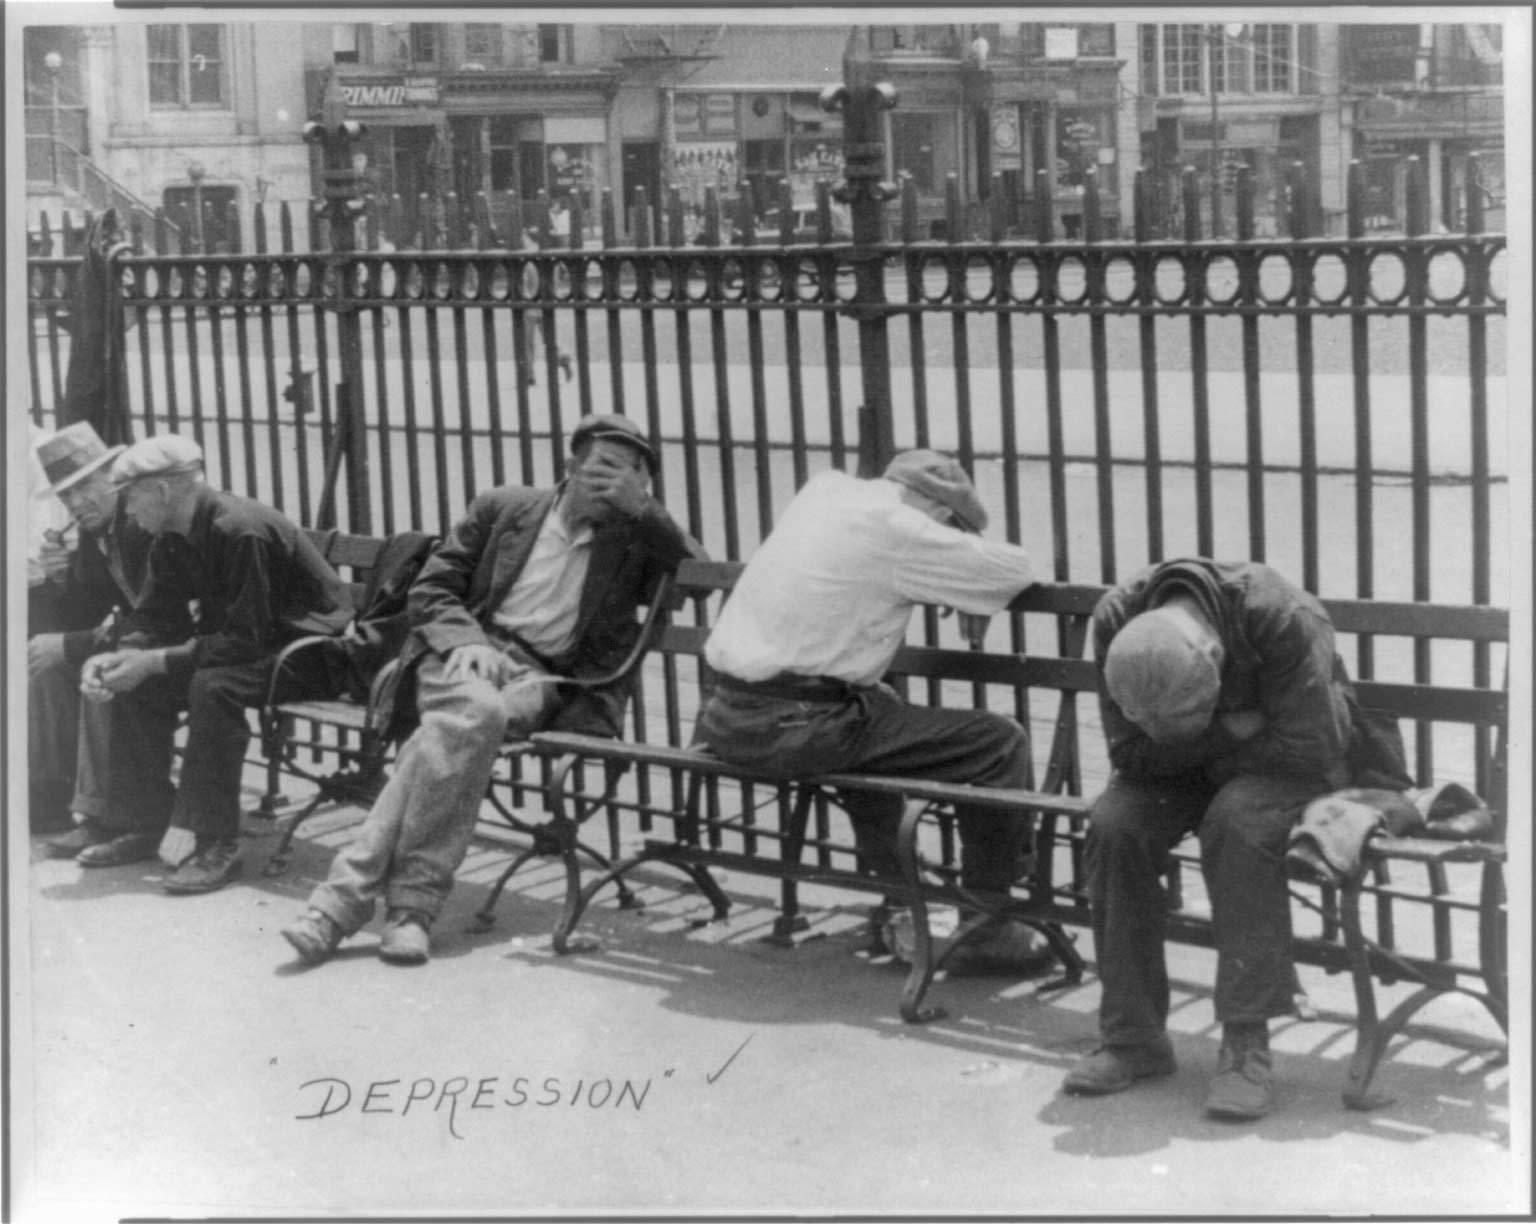 Men slumped over while seated on a bench